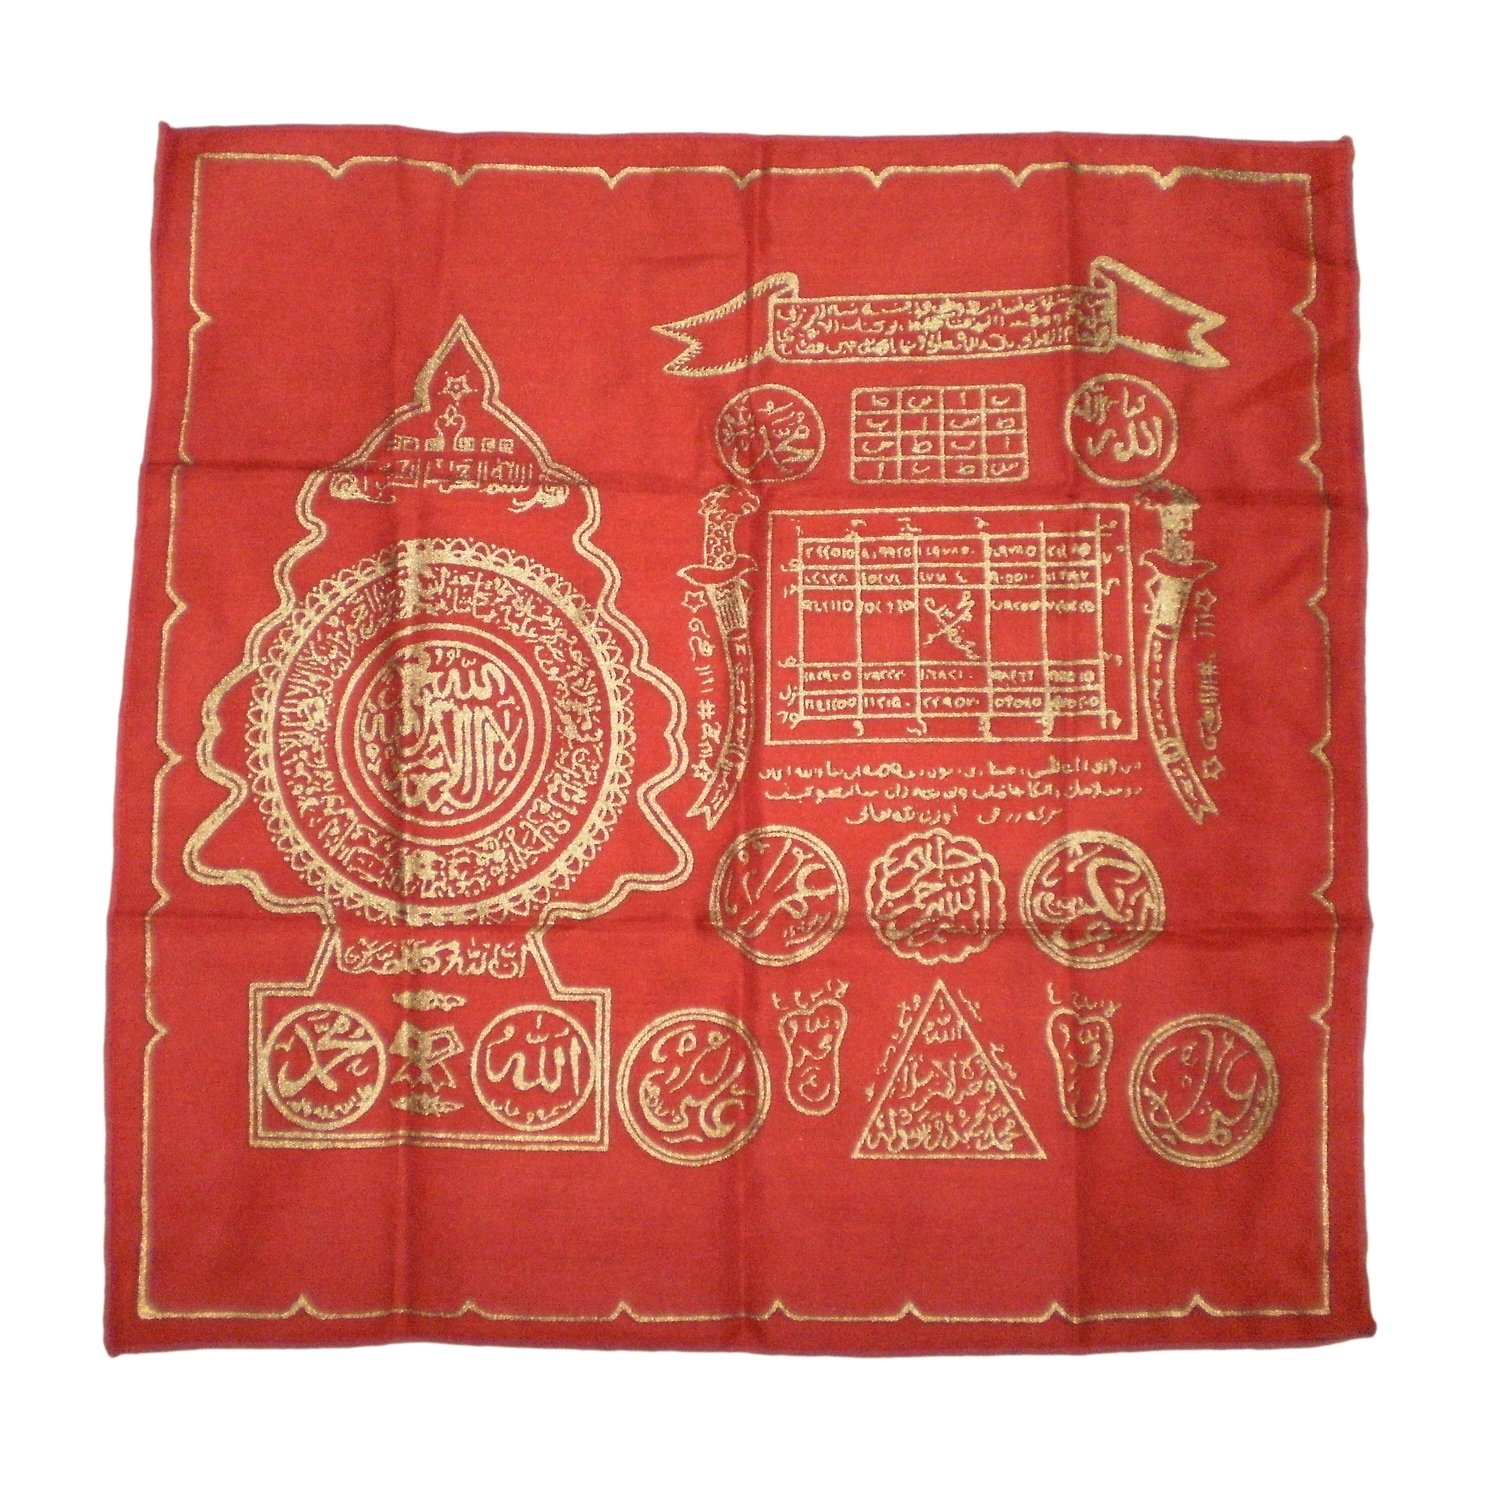 Red Magical Handkerchief with Islamic Spells